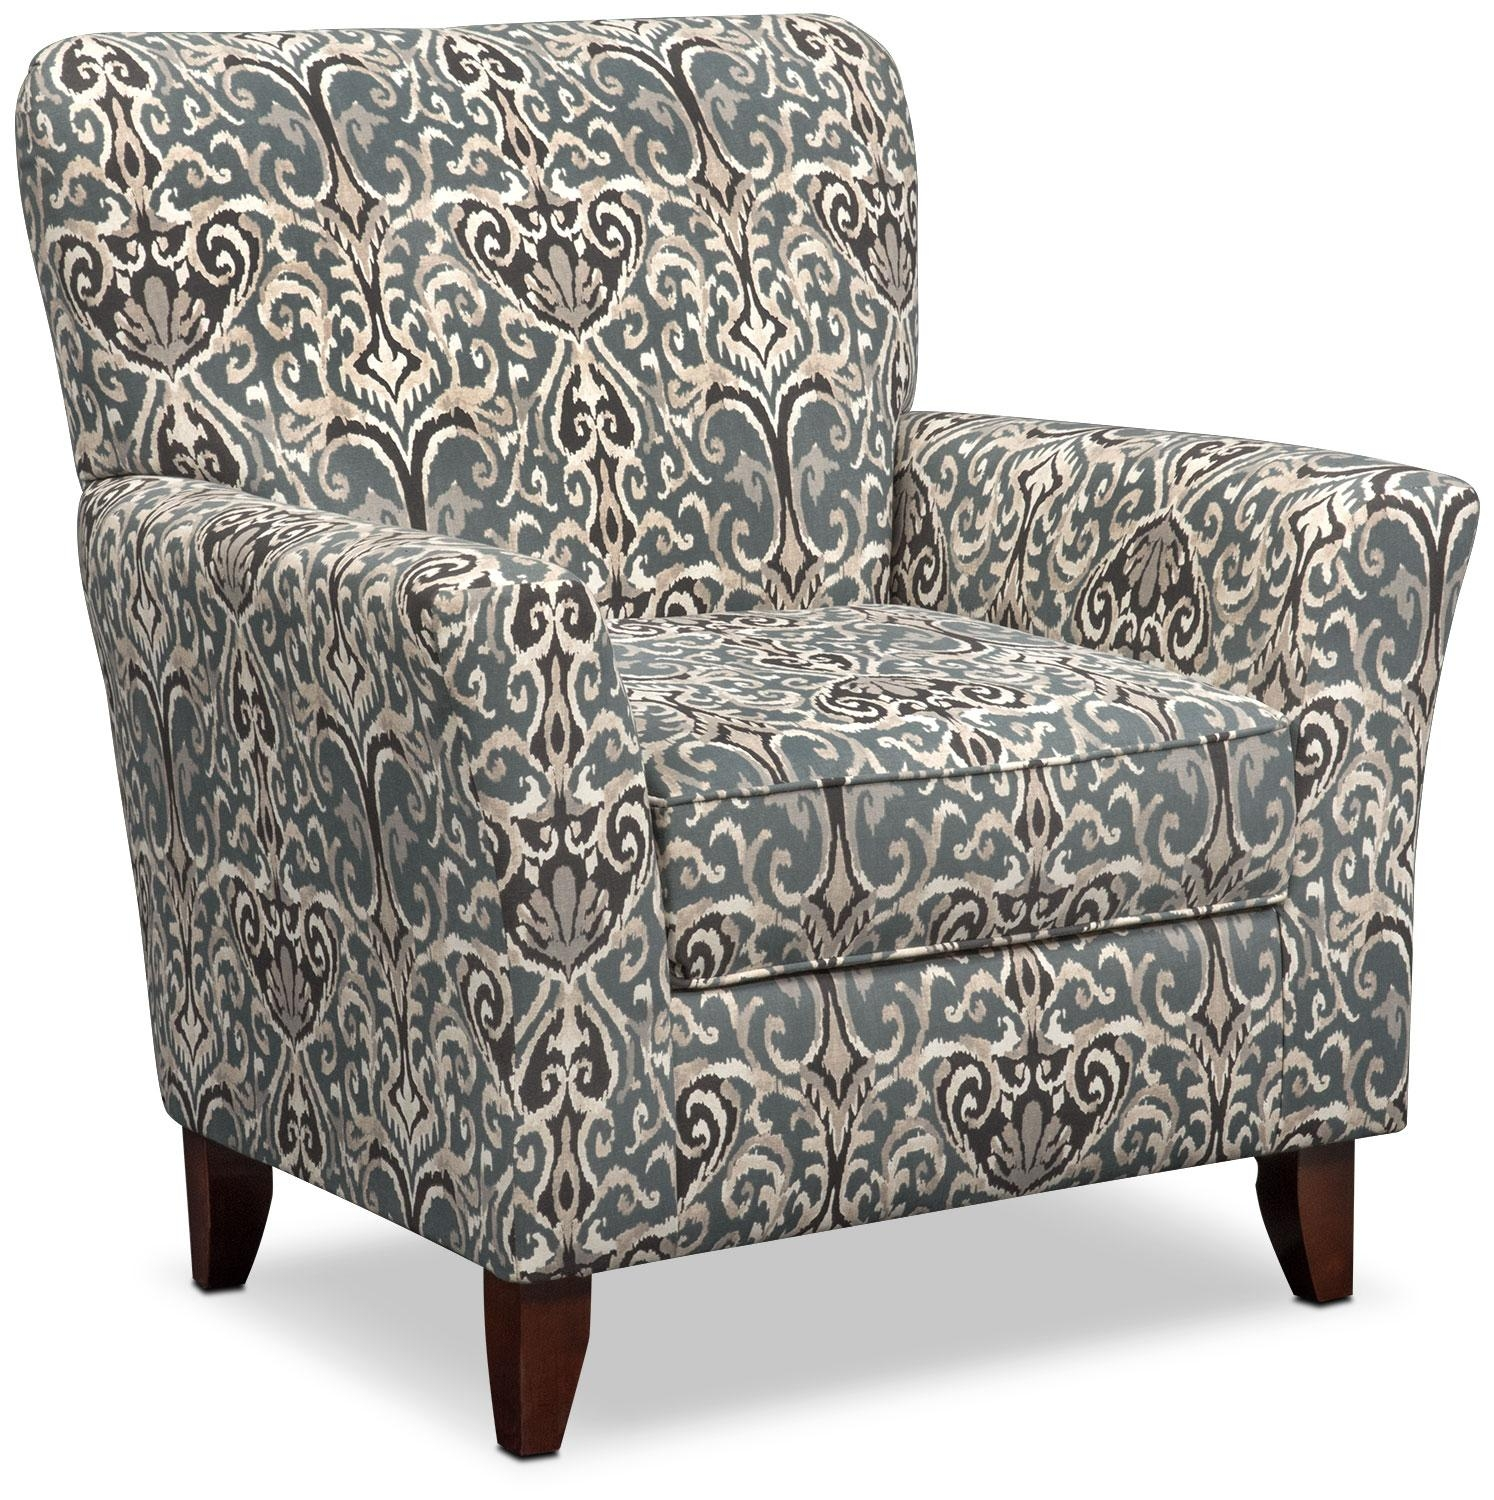 accent sofa sets sleigh bed 20 photos and chair set ideas